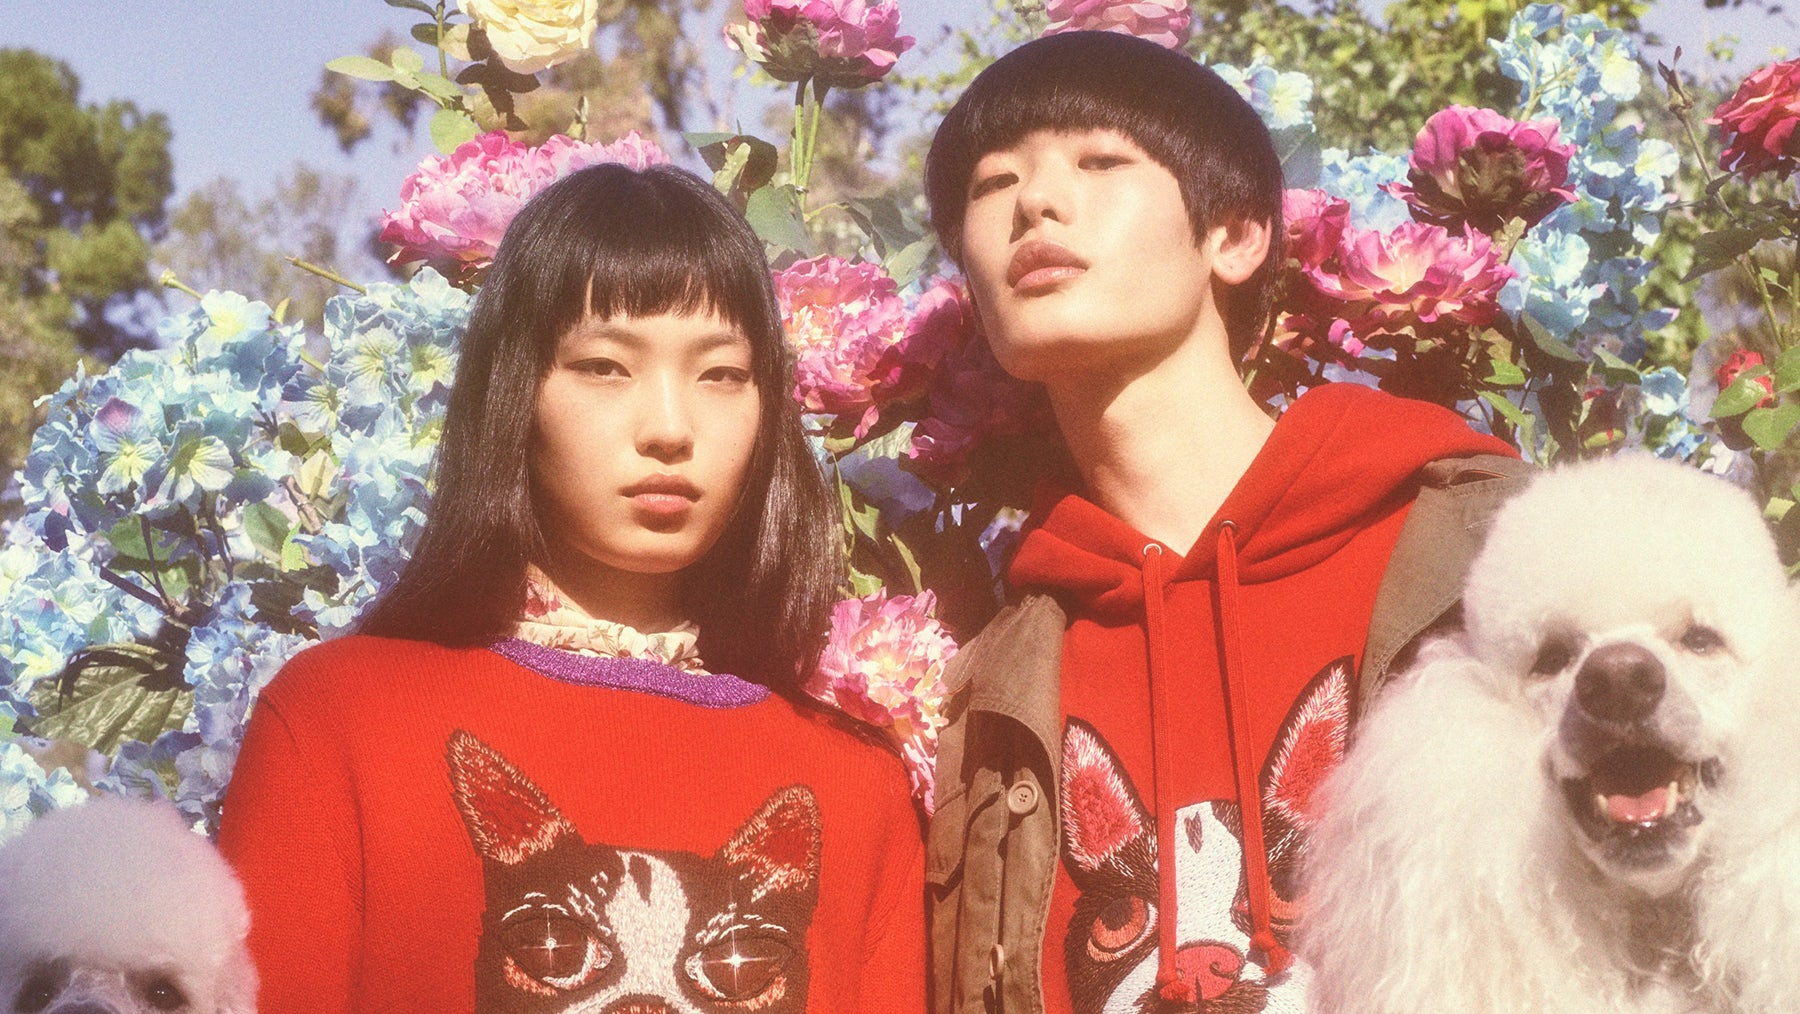 Gucci's capsule collection celebrating the Chinese New Year | Photo: Petra Collins for Gucci